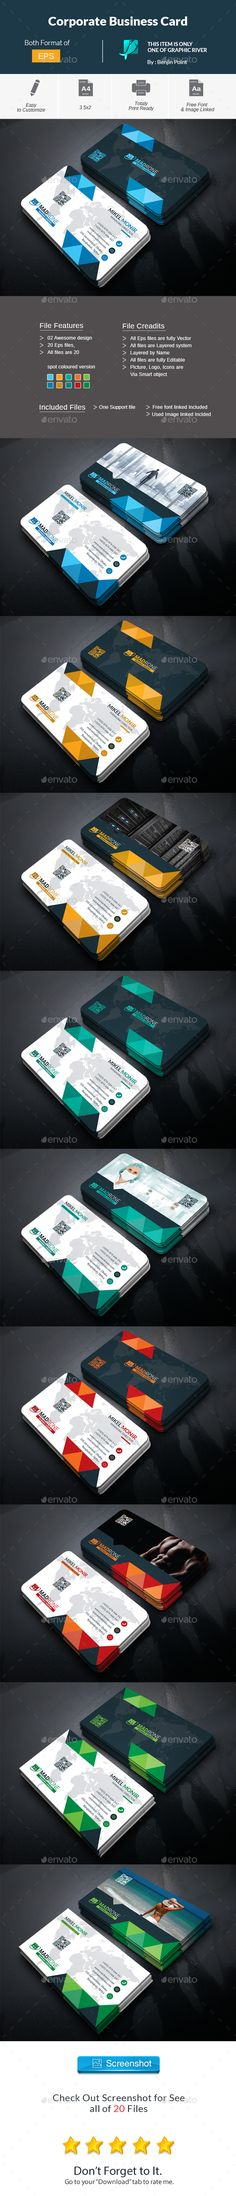 Corporate Business Card - Corporate Business Cards Download here : https://graphicriver.net/item/corporate-business-card/17606313?s_rank=59&ref=Al-fatih